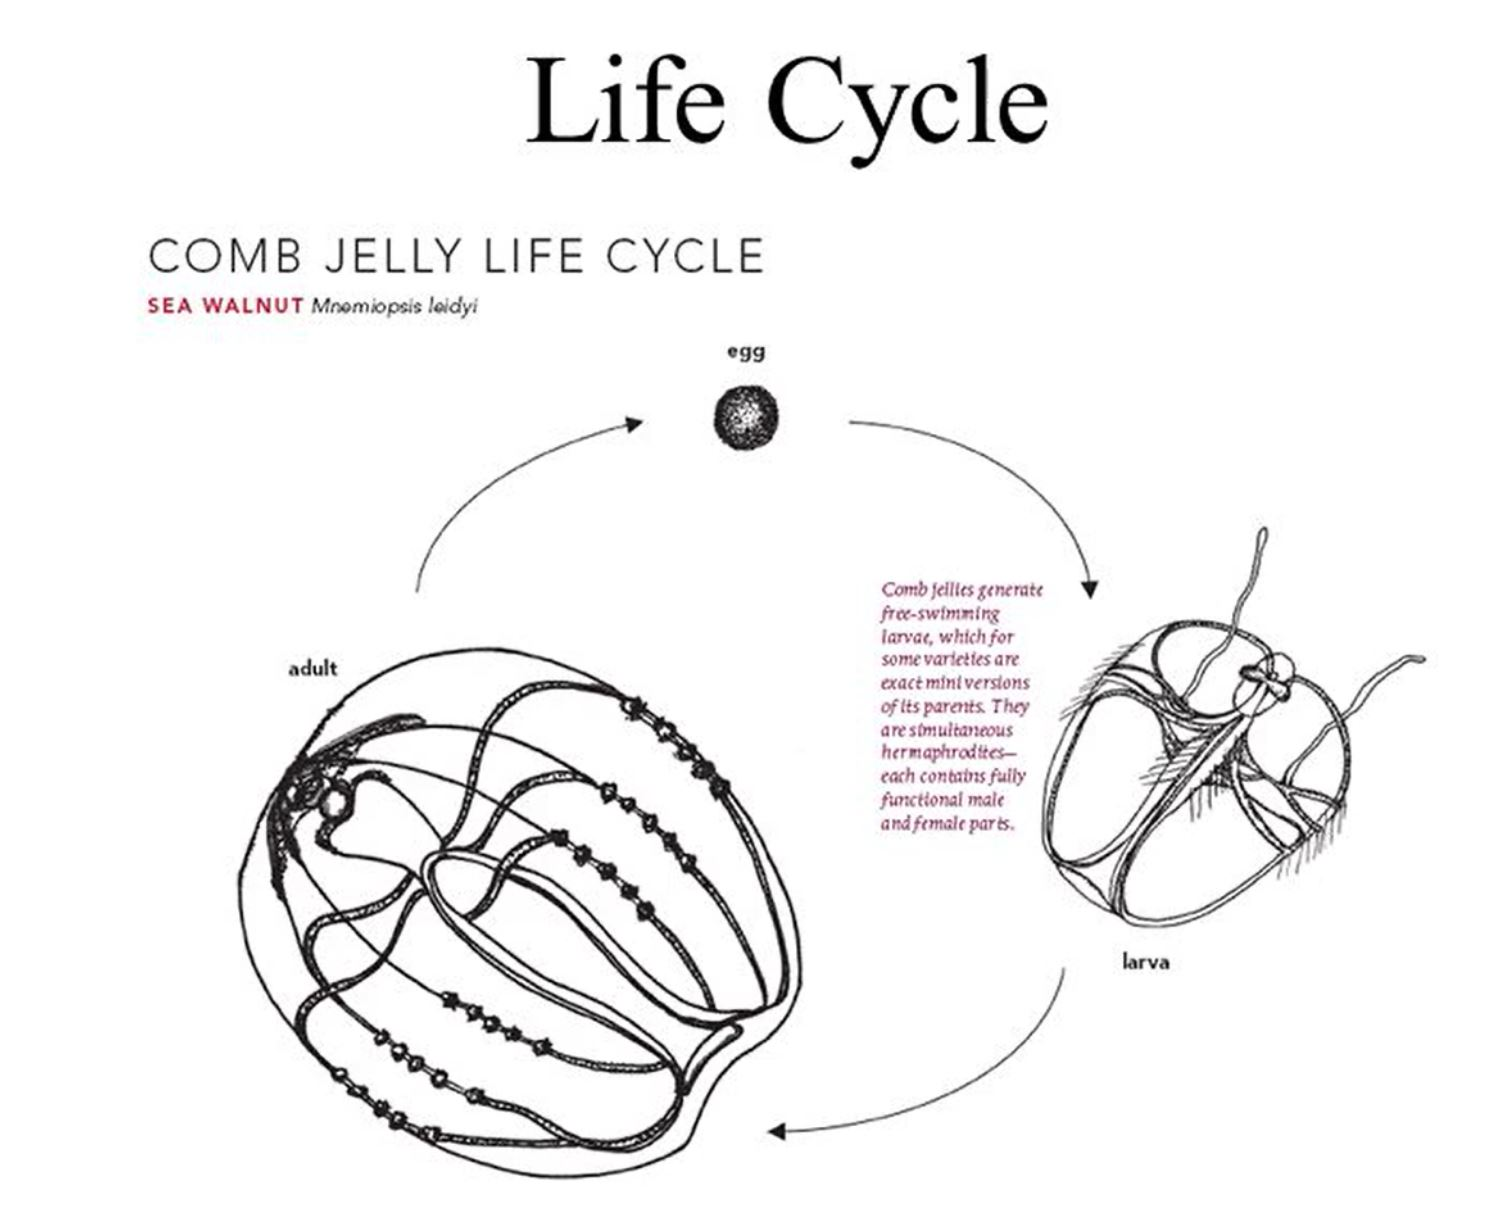 comb jelly life cycle